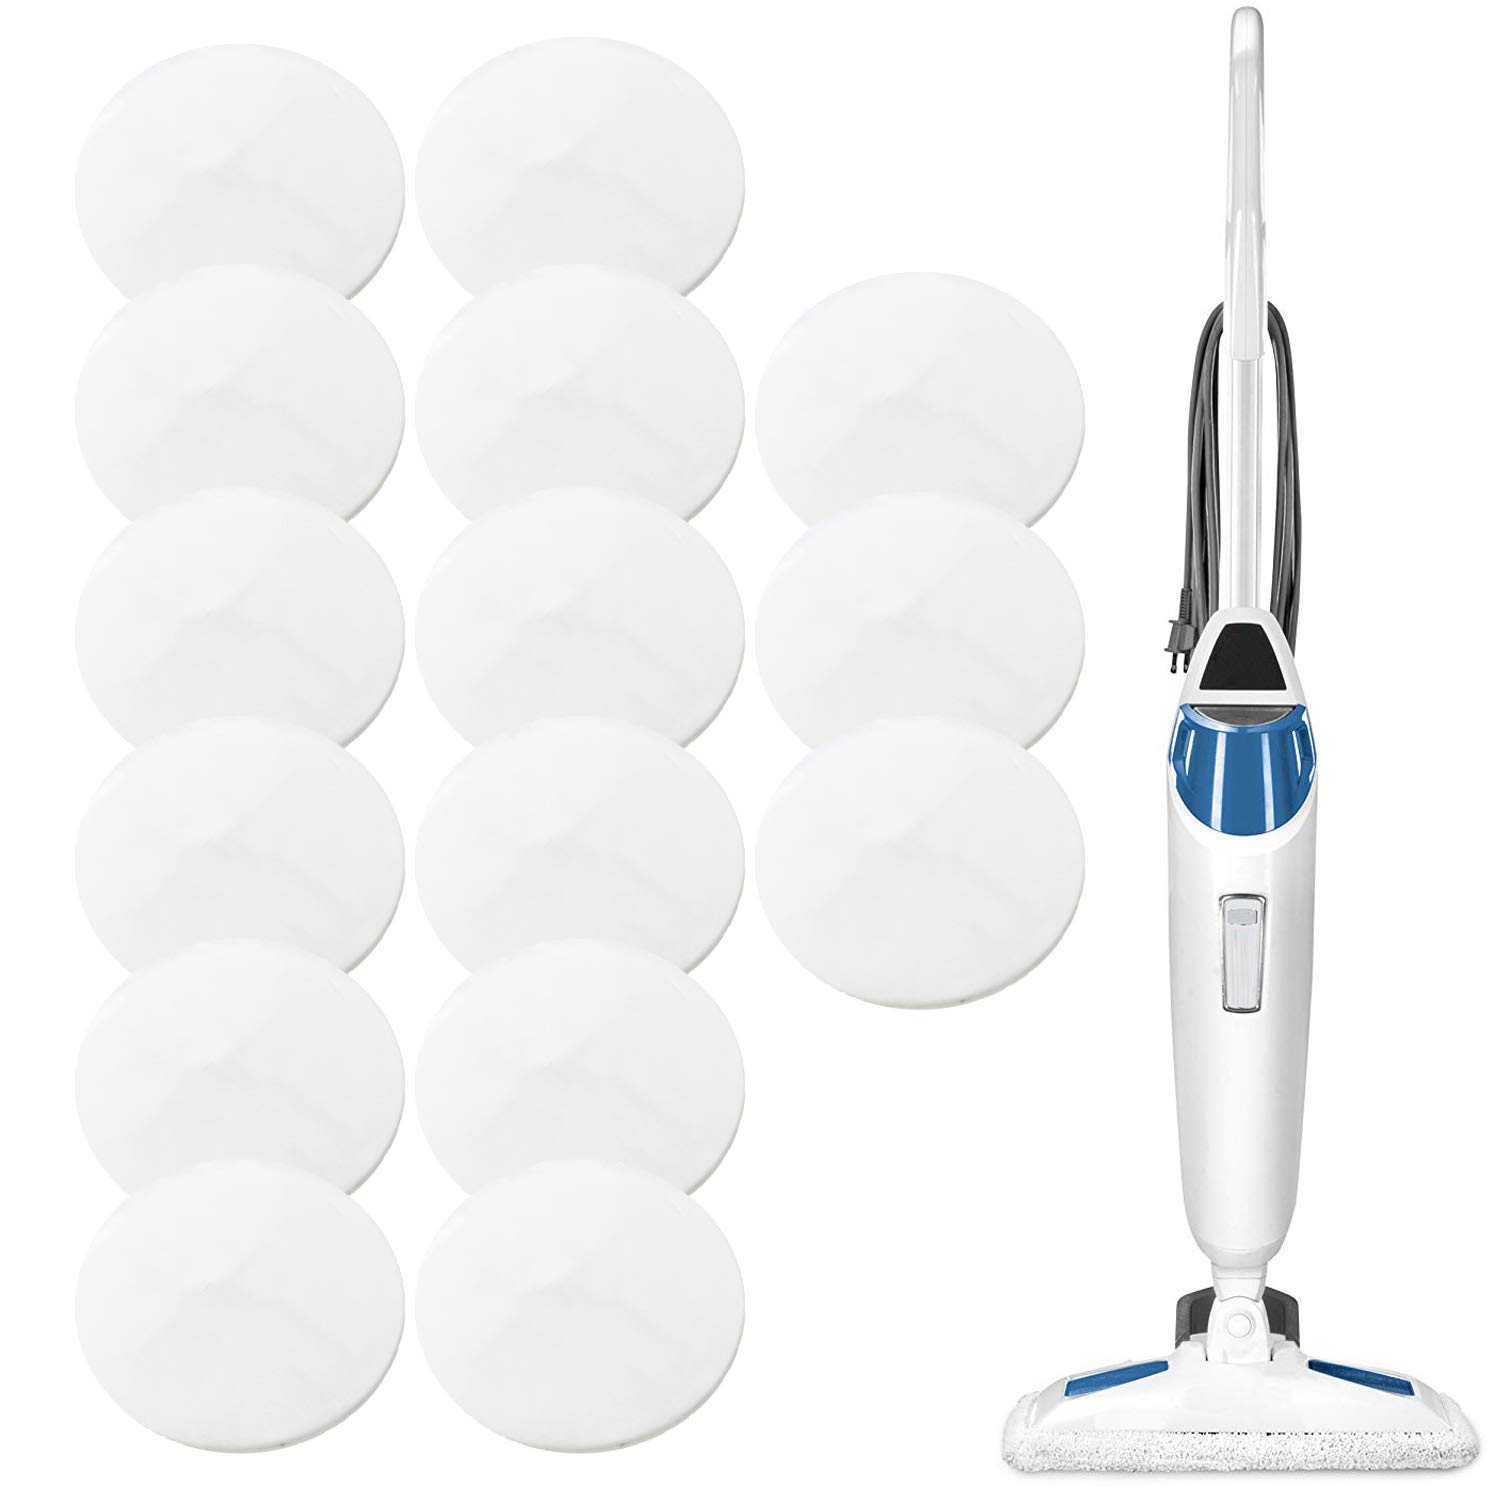 15 Pack Replacement Steam Mop Scent Discs for Bissell Powerfresh and Symphony Series, Including 1940, 1806 and 1132 Models - Spring Breeze Fresh Fragrance Scented Pads by Impresa by Impresa Products